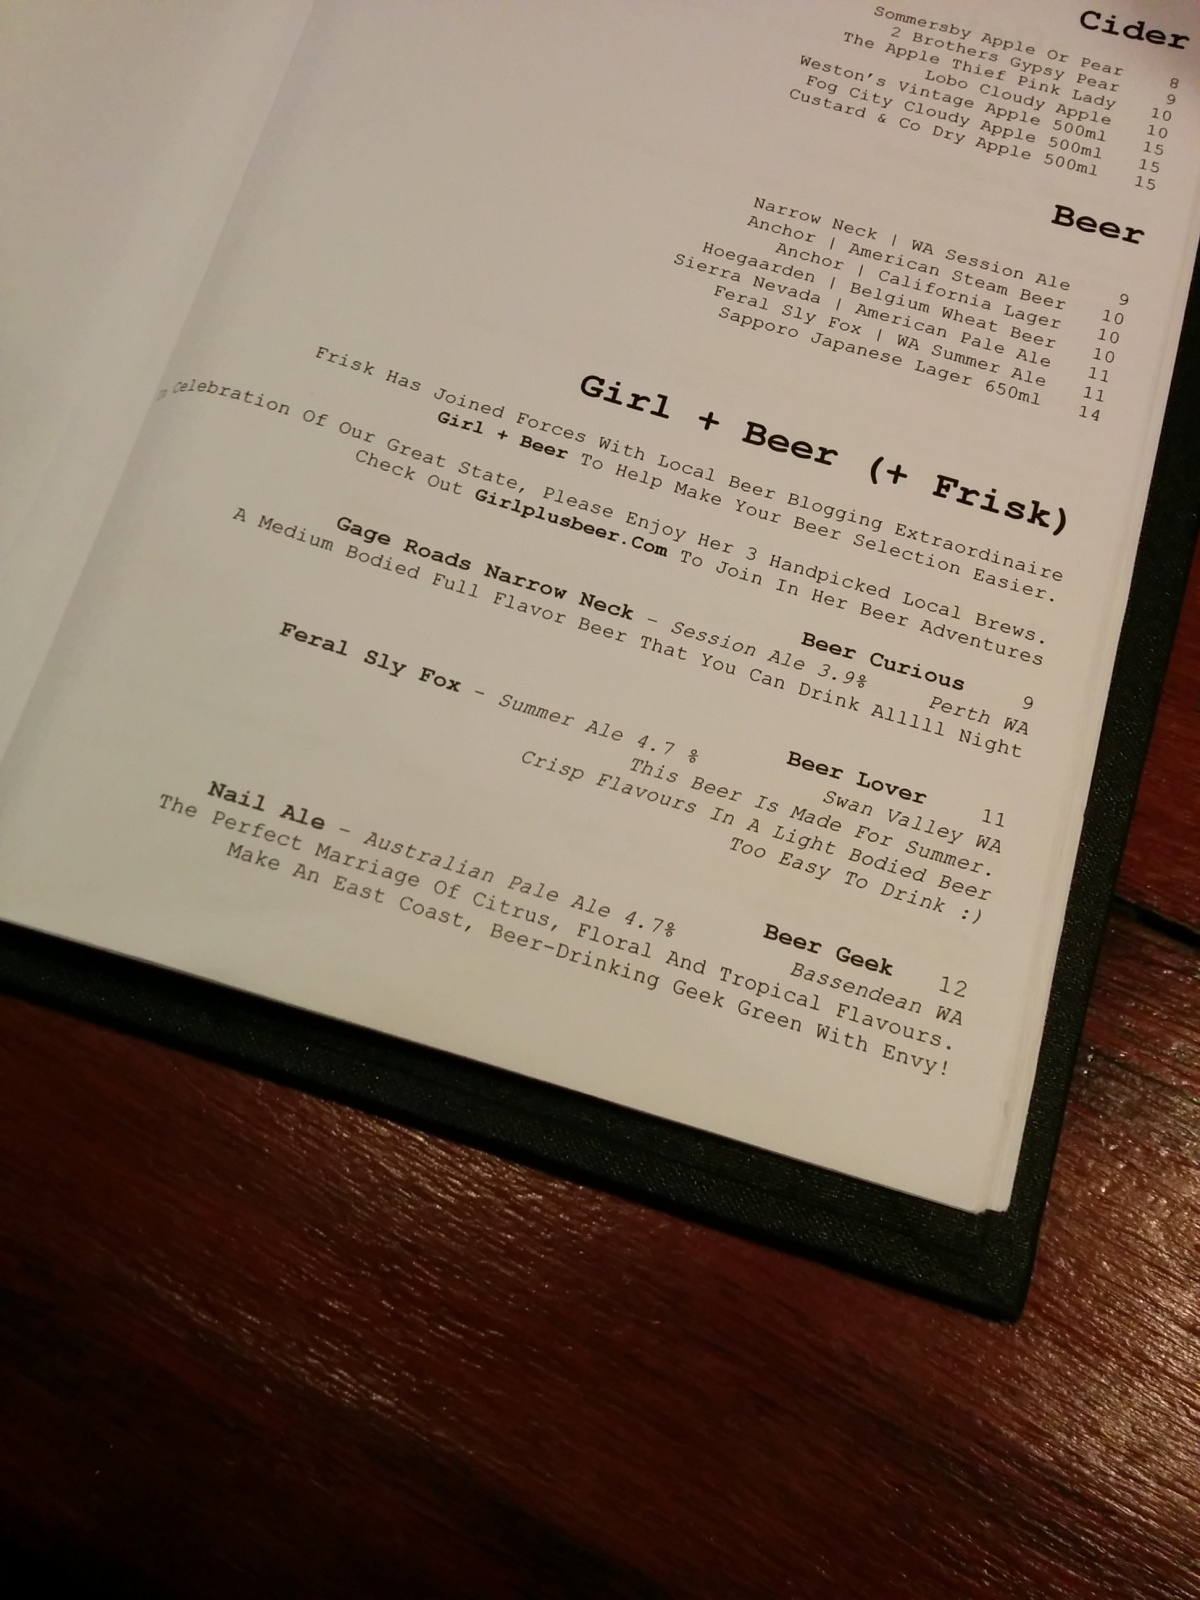 A few words on beerlists